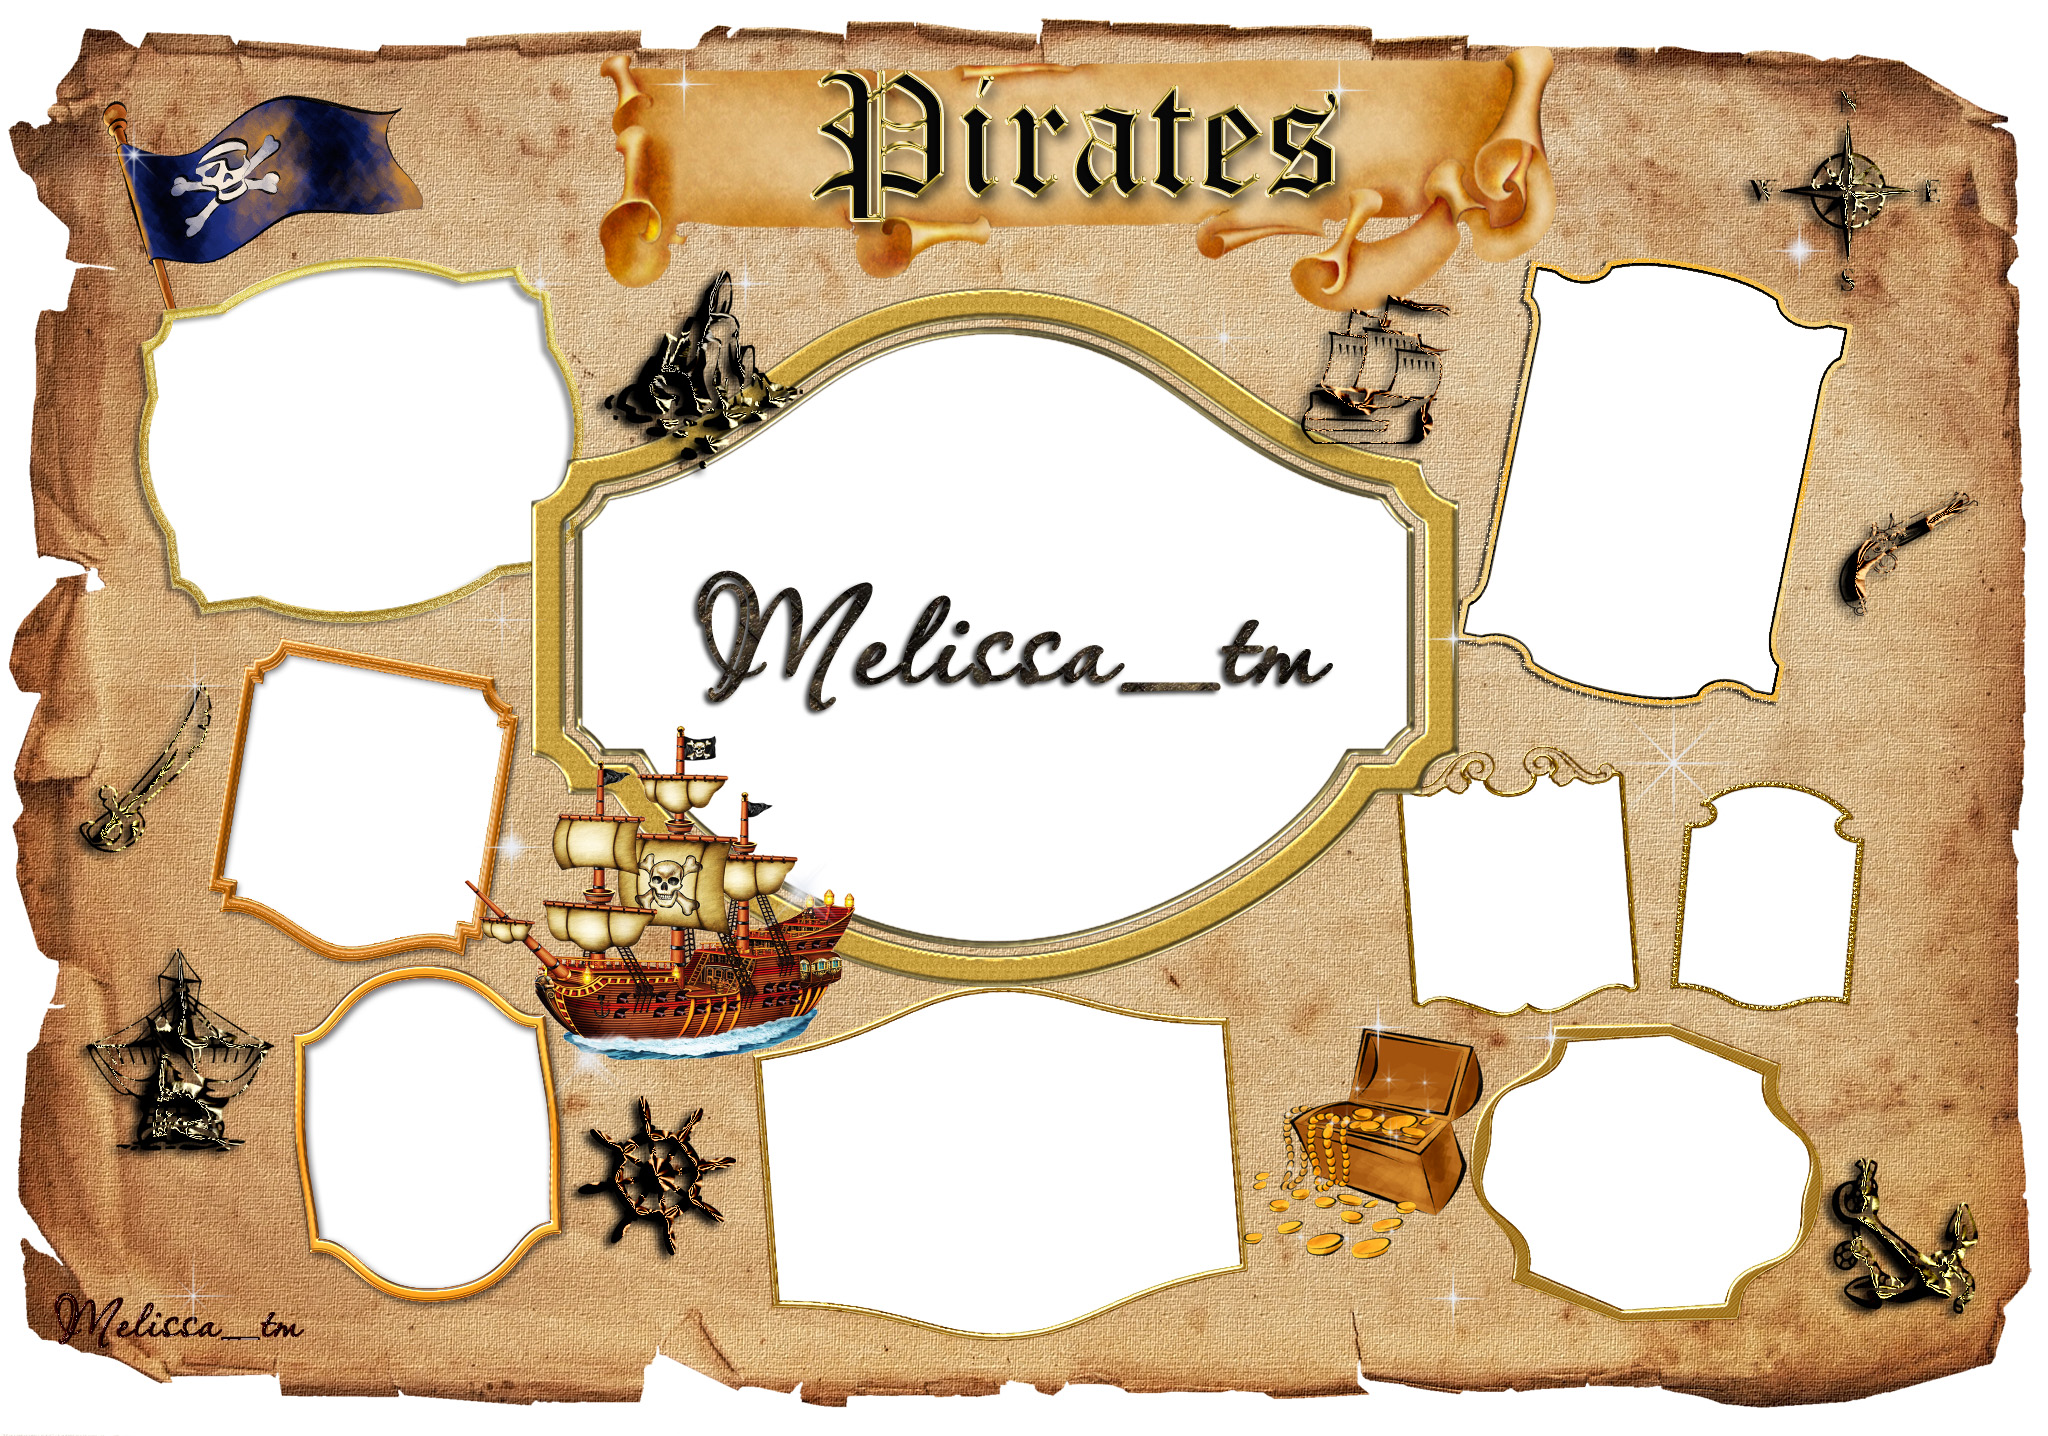 Pirates Frame by Melissa_tm PSD by Melissa-tm on DeviantArt